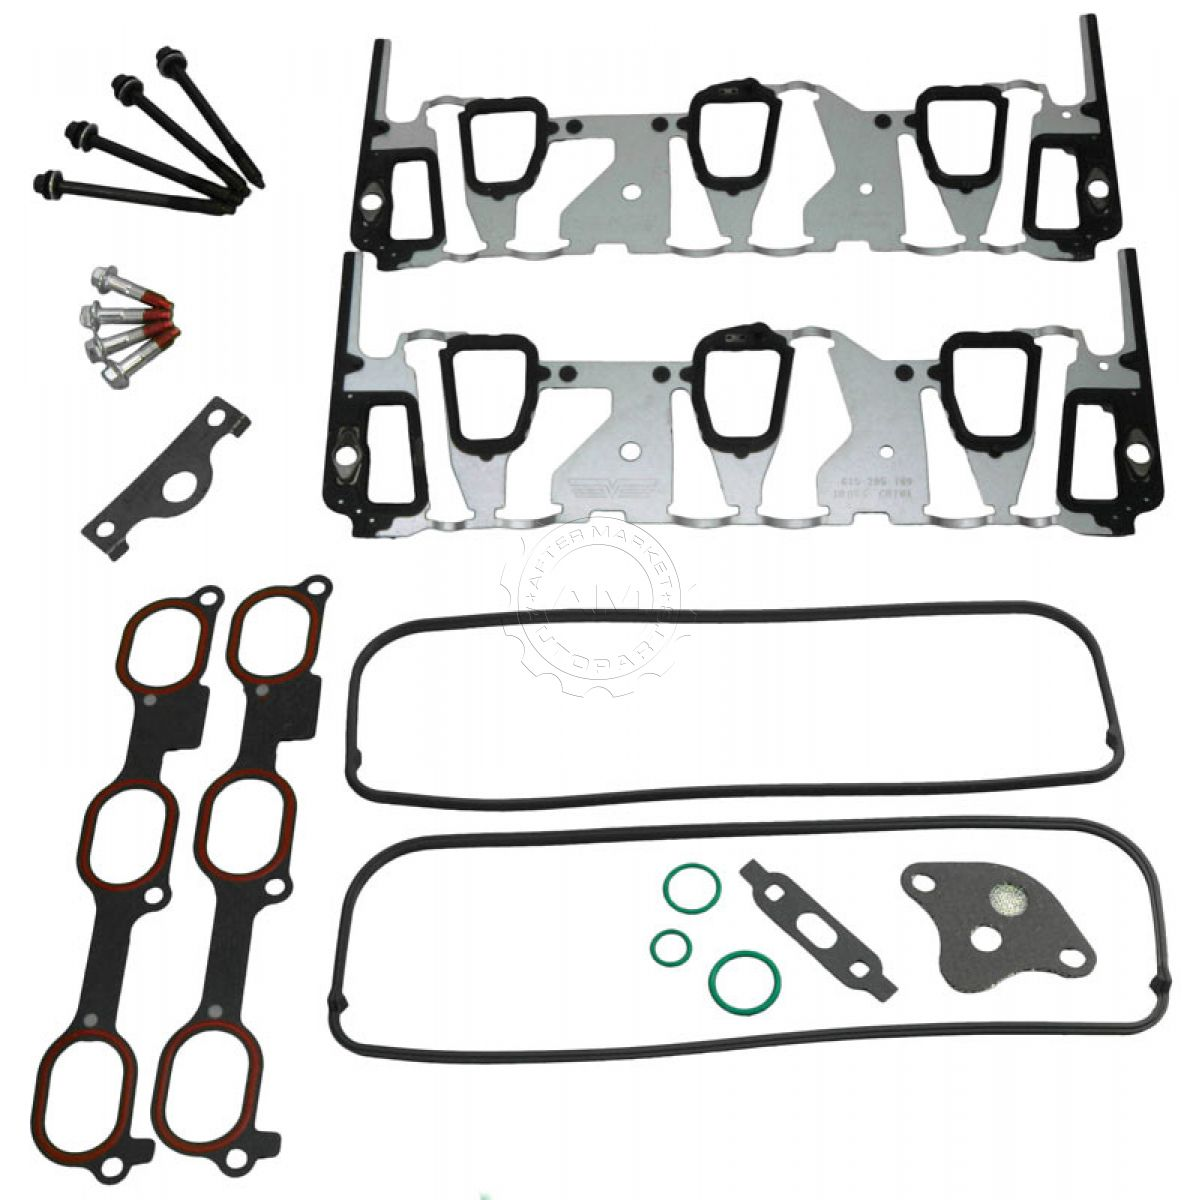 Dorman Intake Manifold Gasket Kit With Bolts For Pontiac Buick